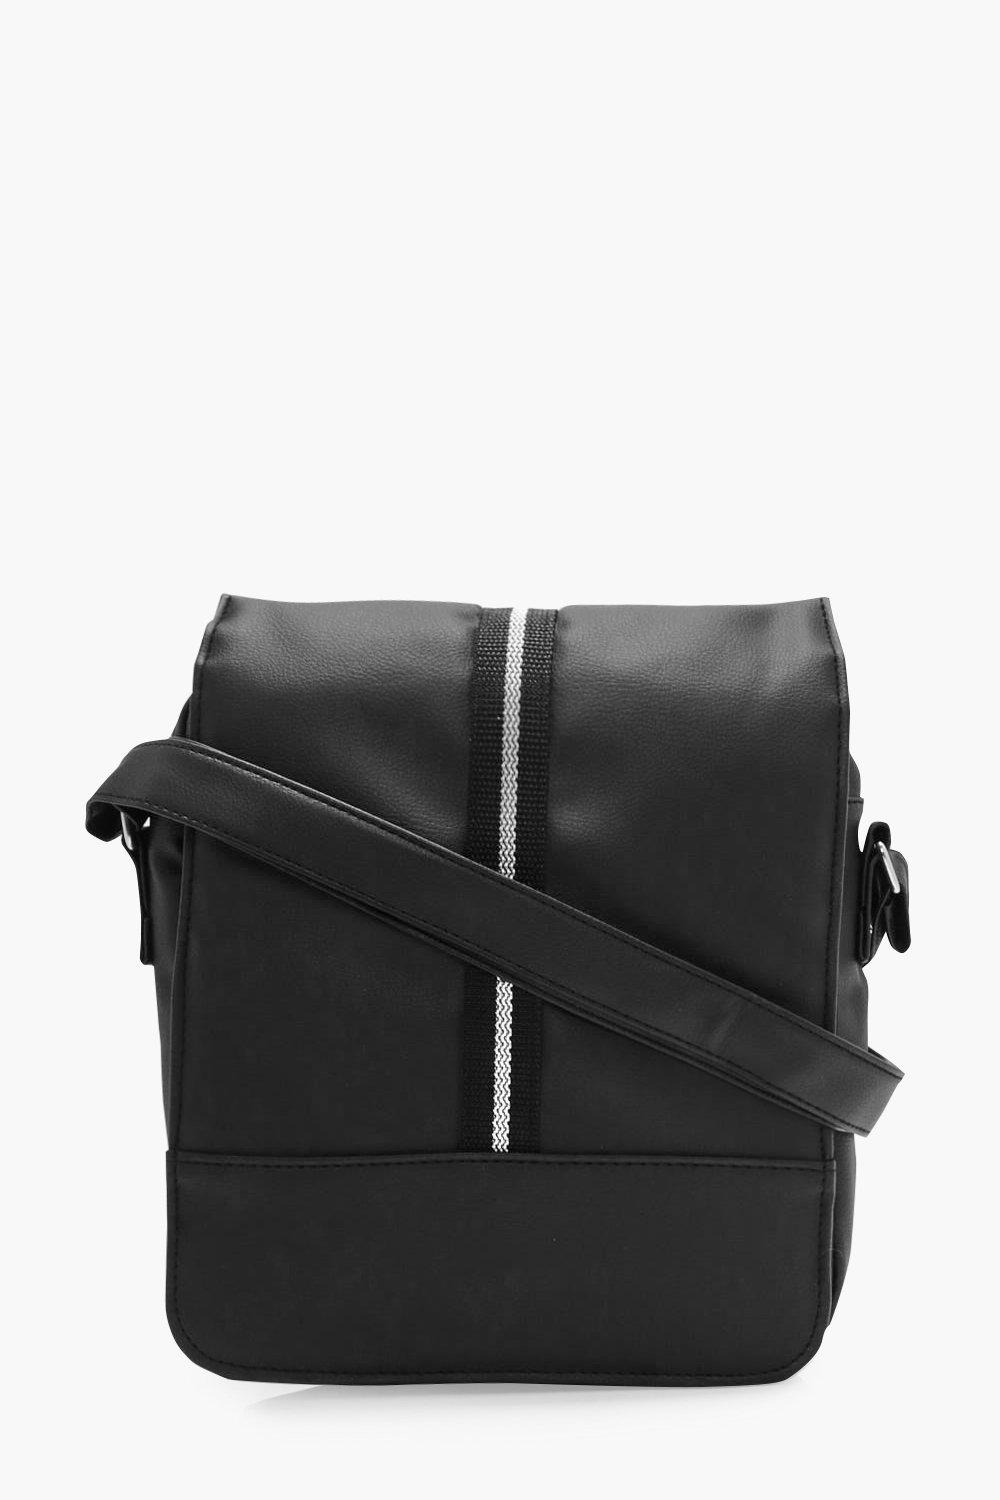 Black PU Man Bag - black - All Black PU Man Bag -